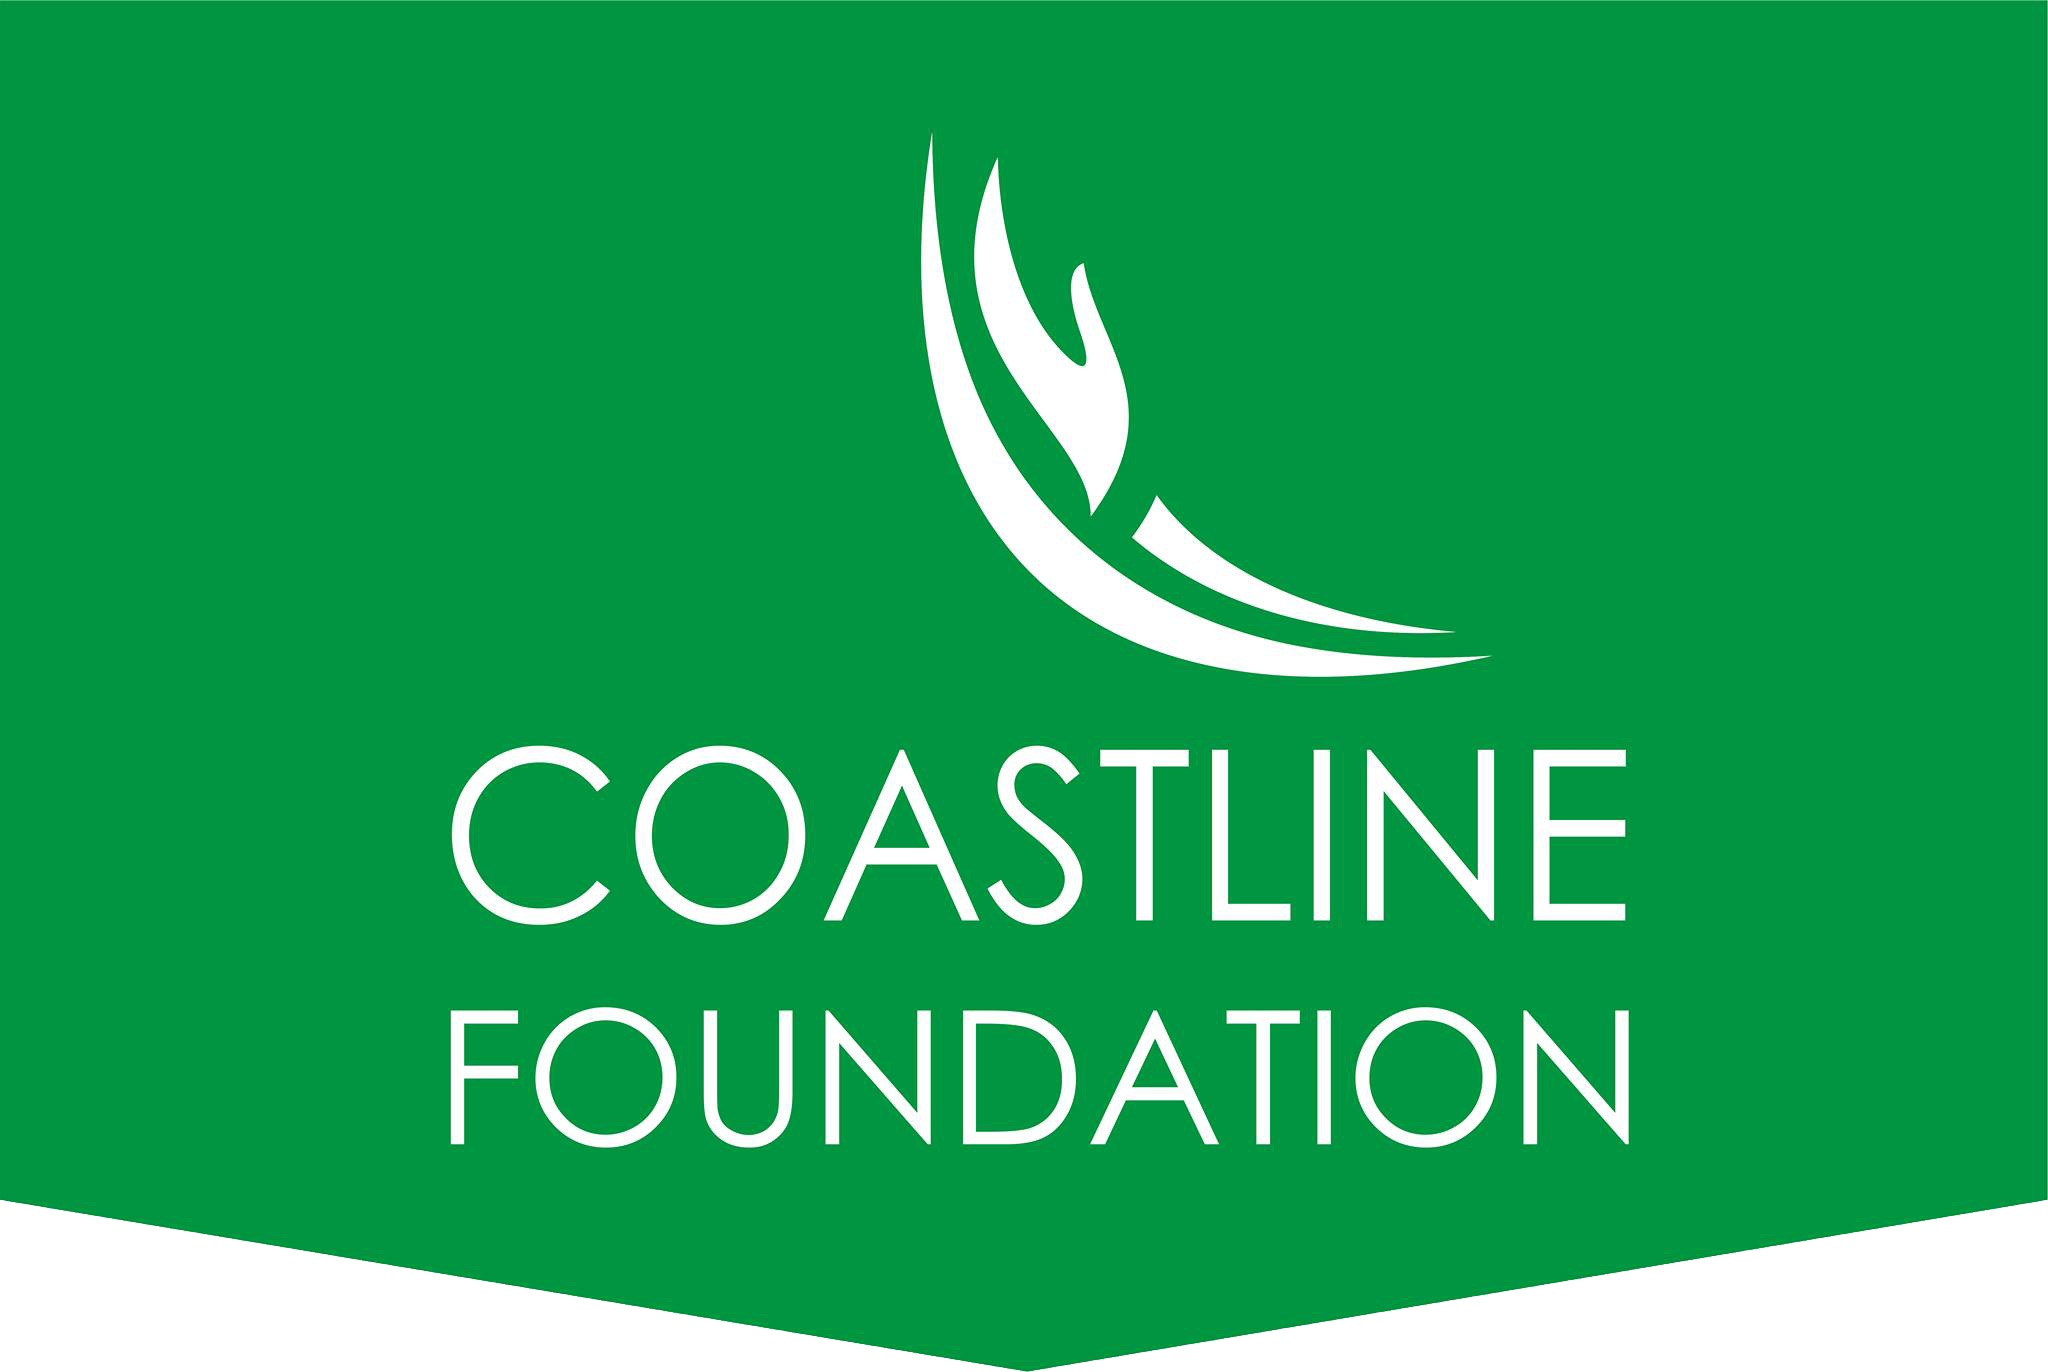 Coastline Foundation